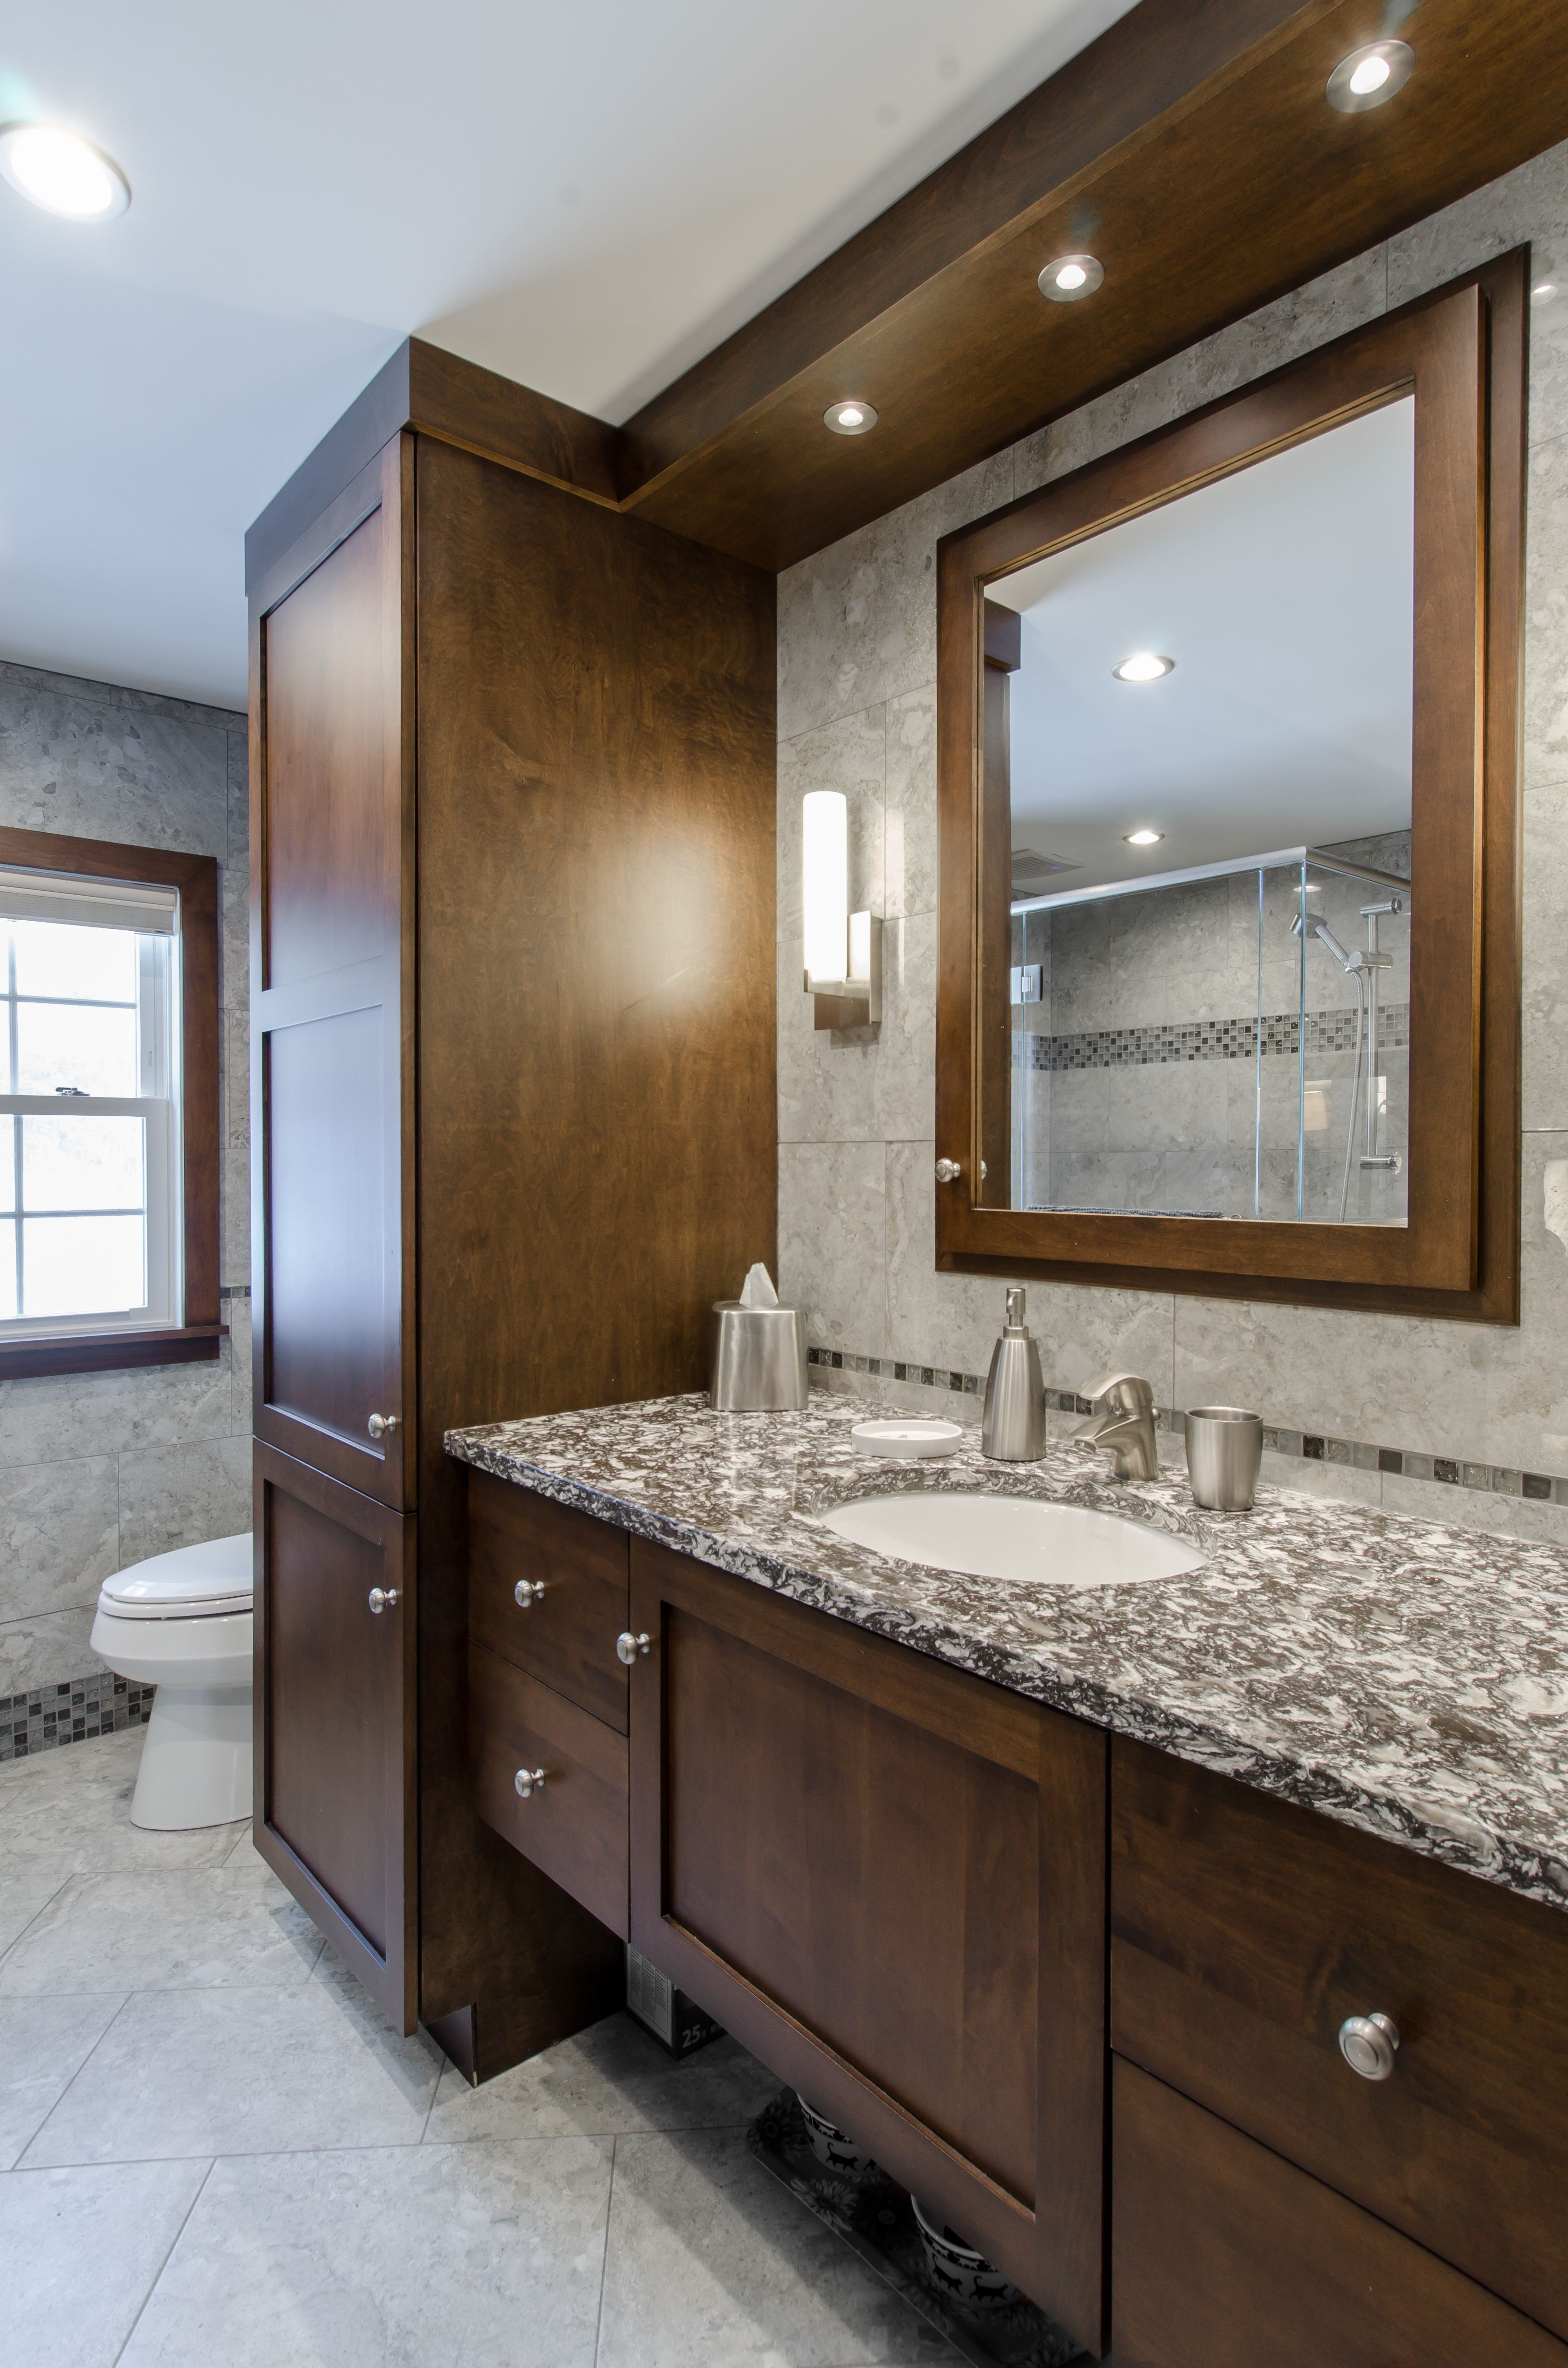 Charmant Bathroom Remodel  Dark Brown Cabinets, Custom Soffit With Built In Lights,  Framed Mirror To Match The Cabinets, Make Up Area, Camrbia Countertop, ...